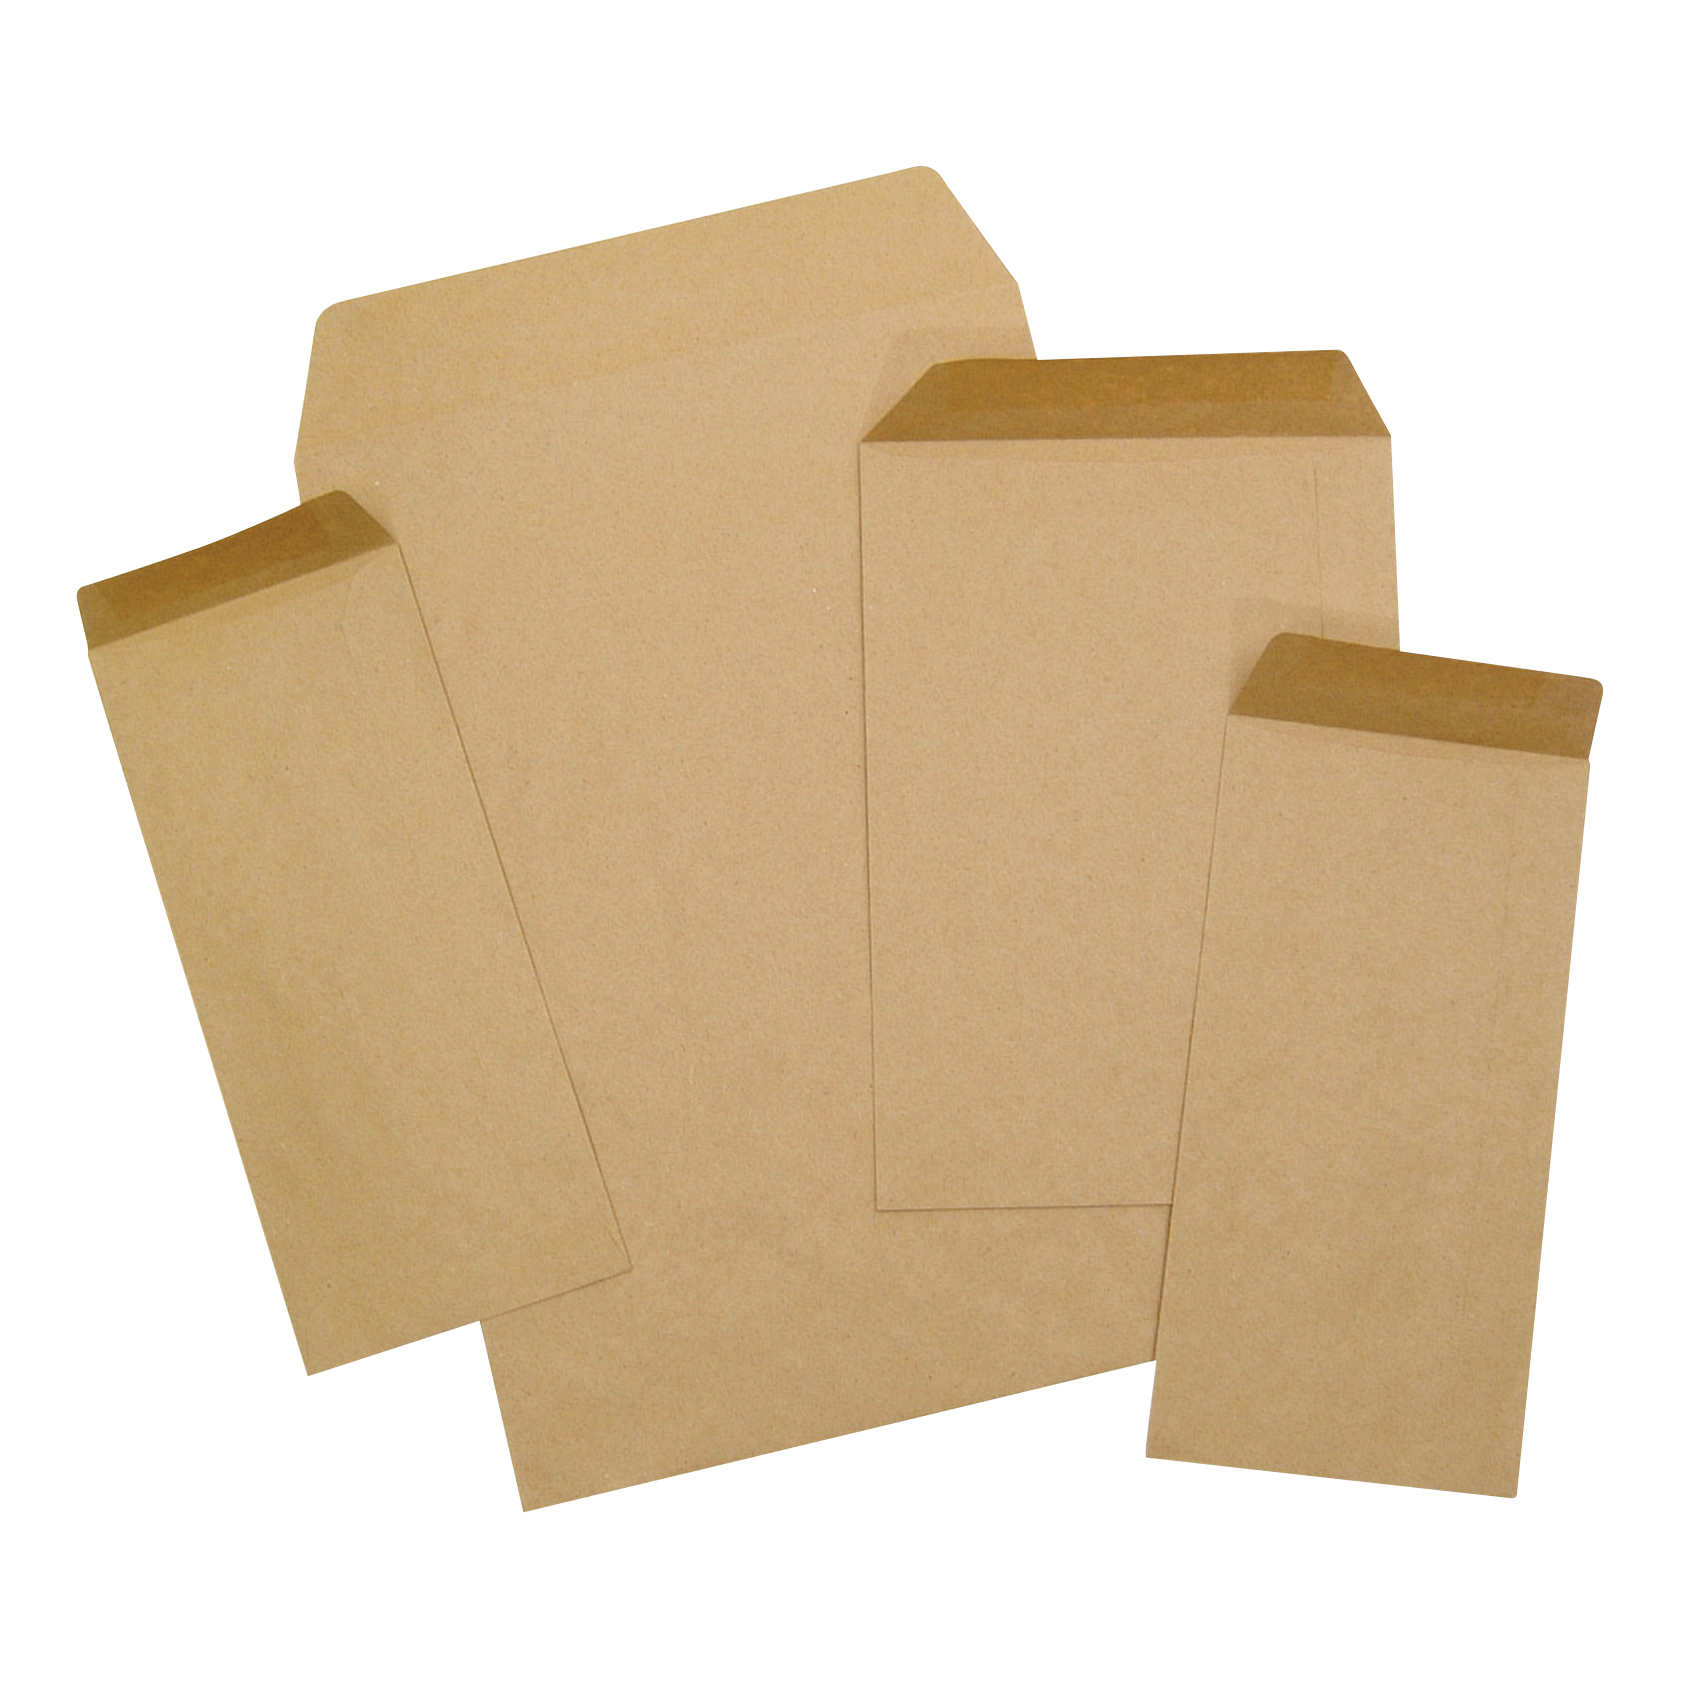 5 Star Office Envelopes FSC Pocket Recycled Gummed 80gsm DL 220x110mm Manilla Pack 1000